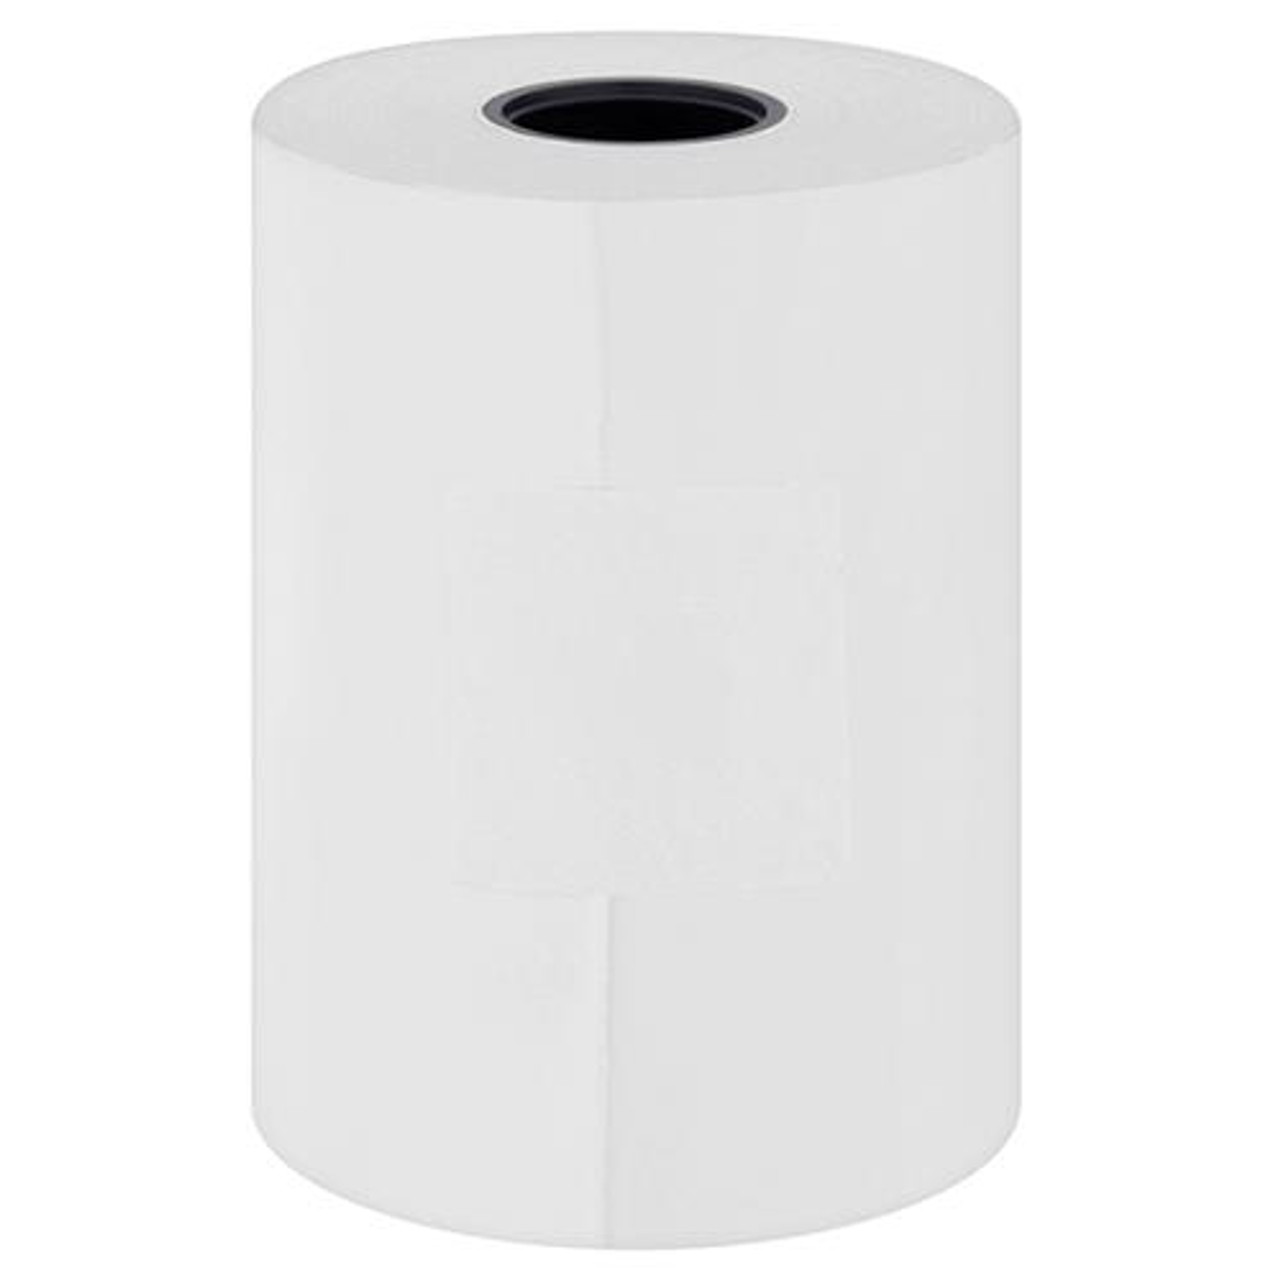 Thermal till roll 57 x 60mm 1Ply pack of 50